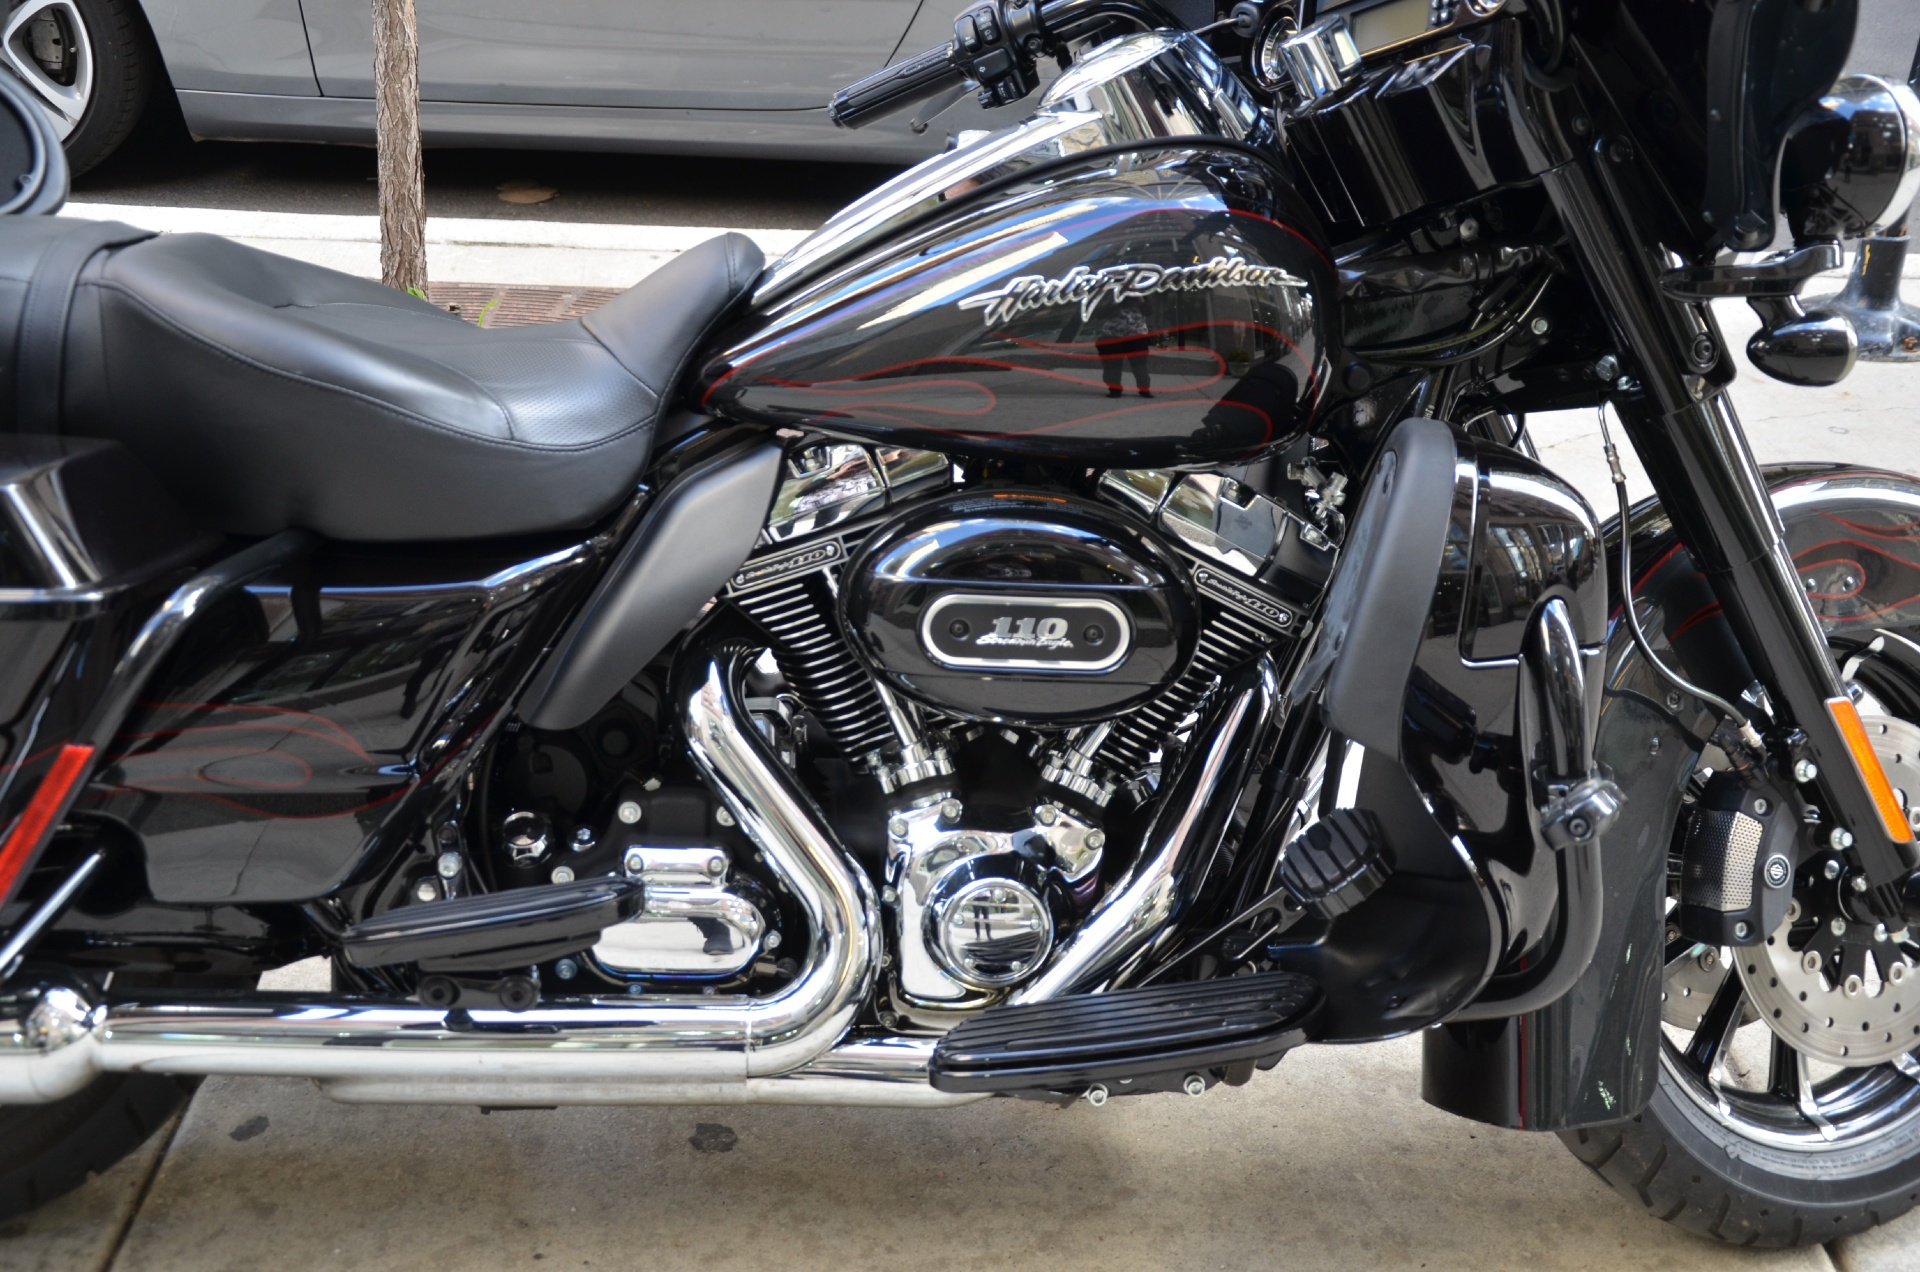 Harley Davidson Stock: 2010 Harley-Davidson Flhtcuse 5 Screaming Eagle Stock